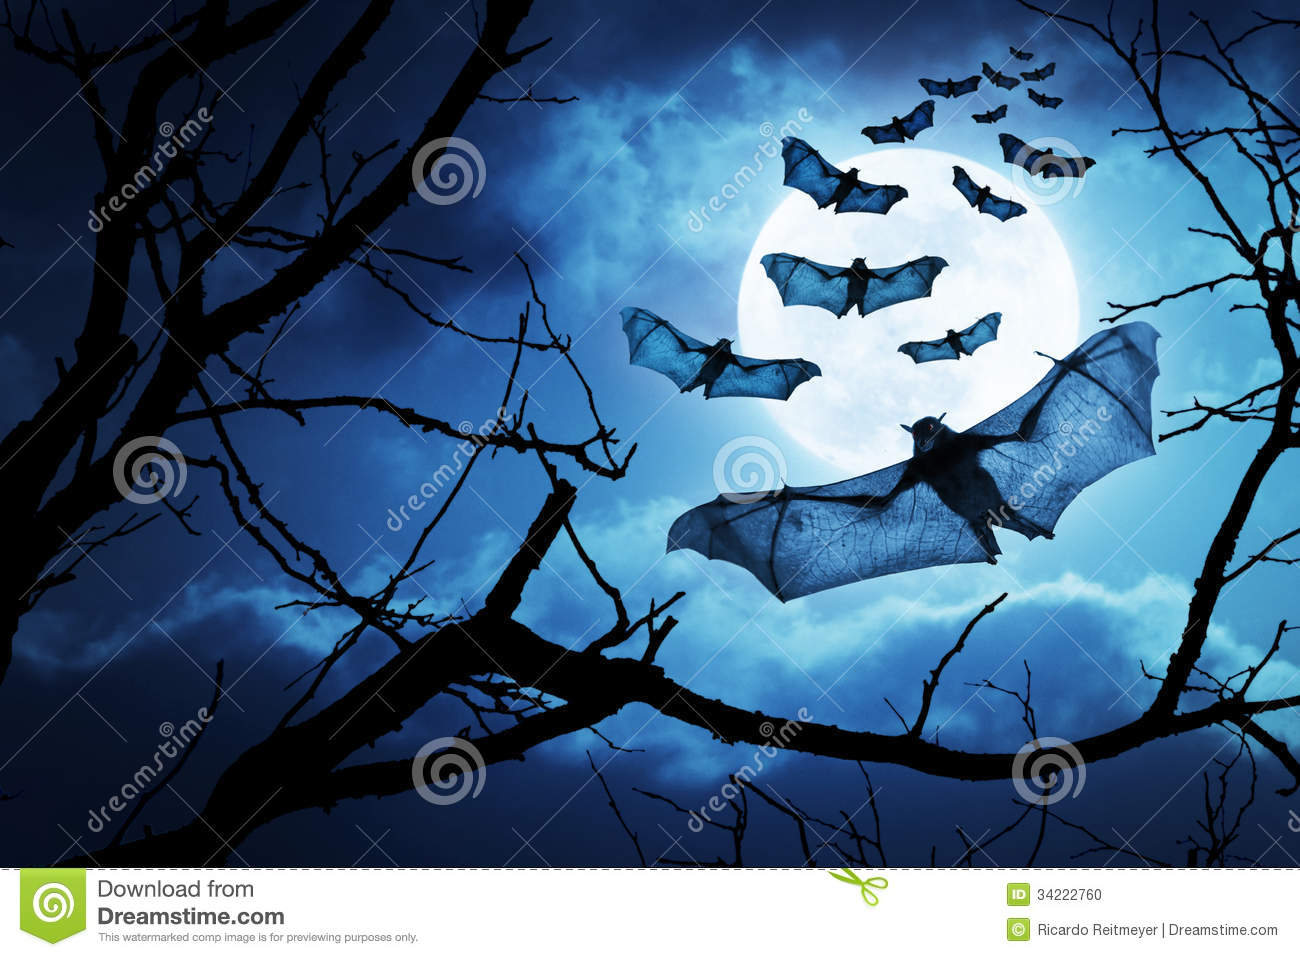 Creepy Bats Fly In For Halloween Night By A Full Moon